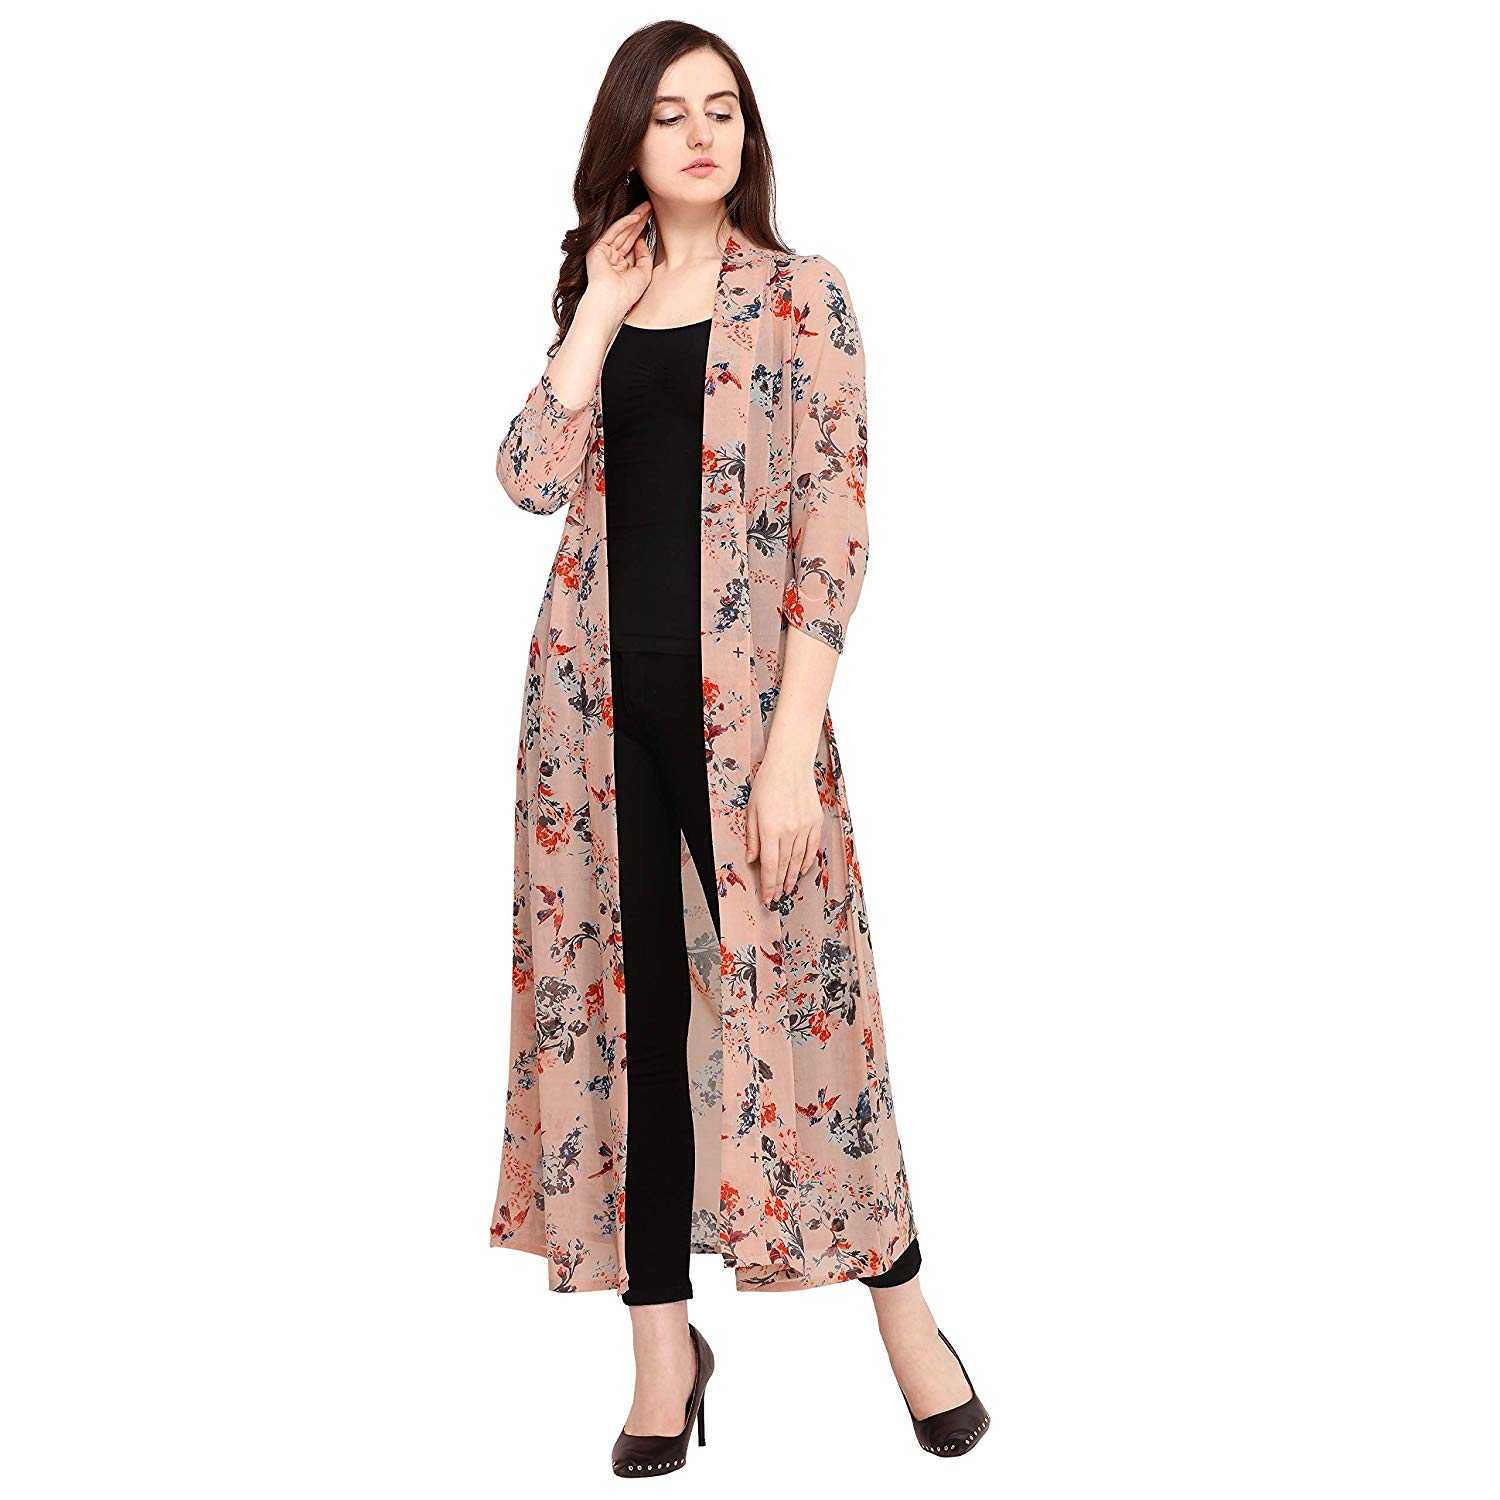 Spring outfit for women